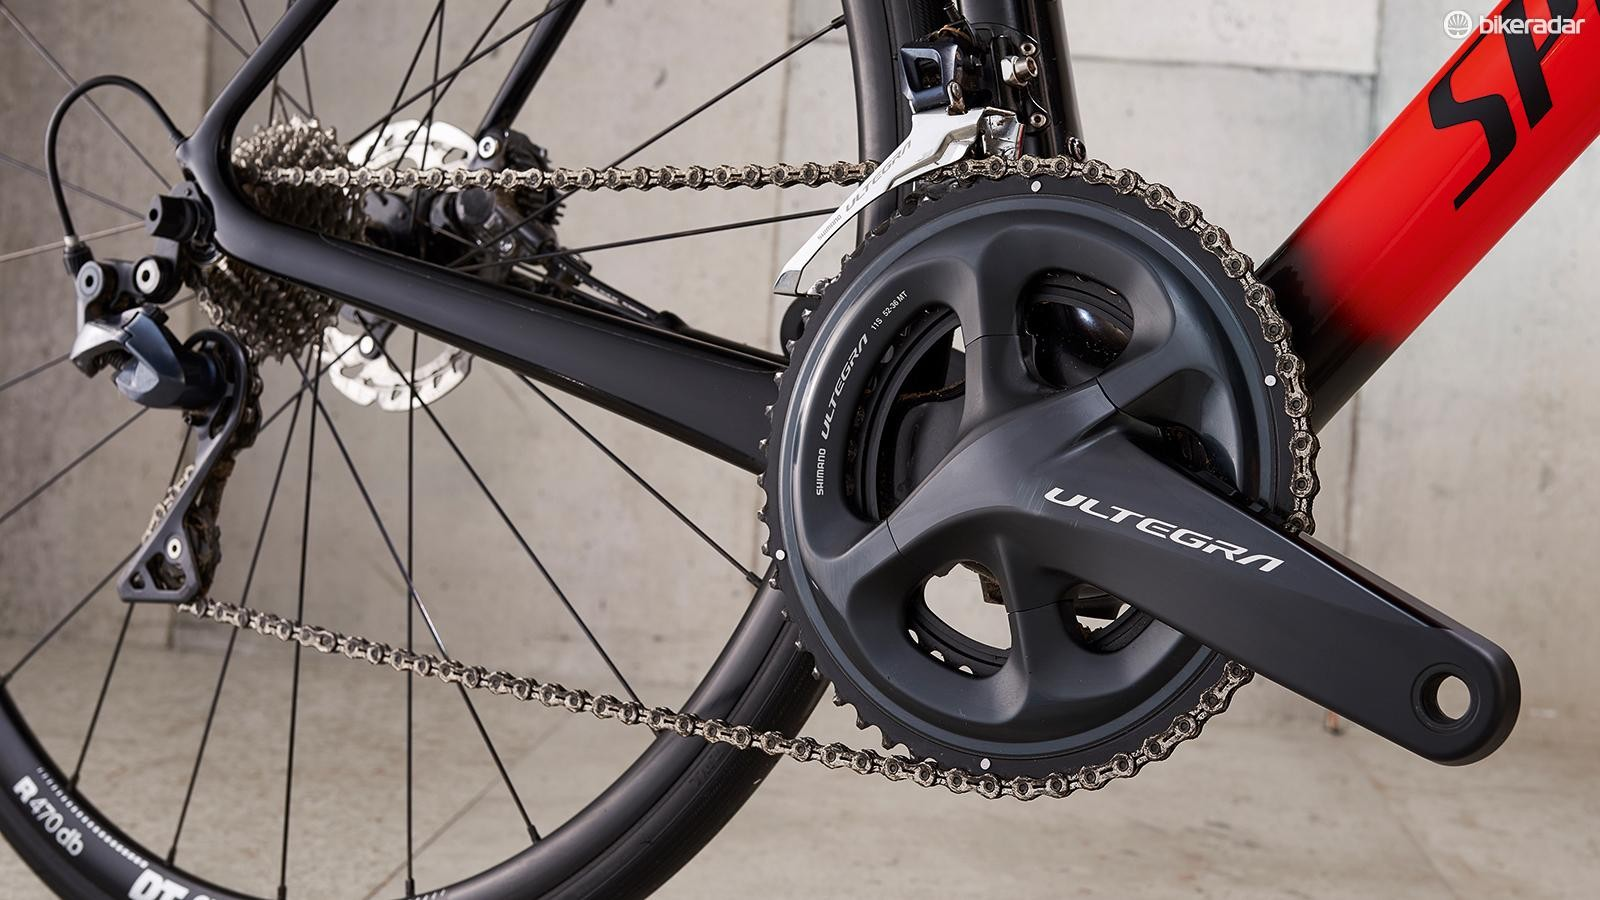 Shimano Ultegra has proven to be flawless, here coupled with a KMC chain